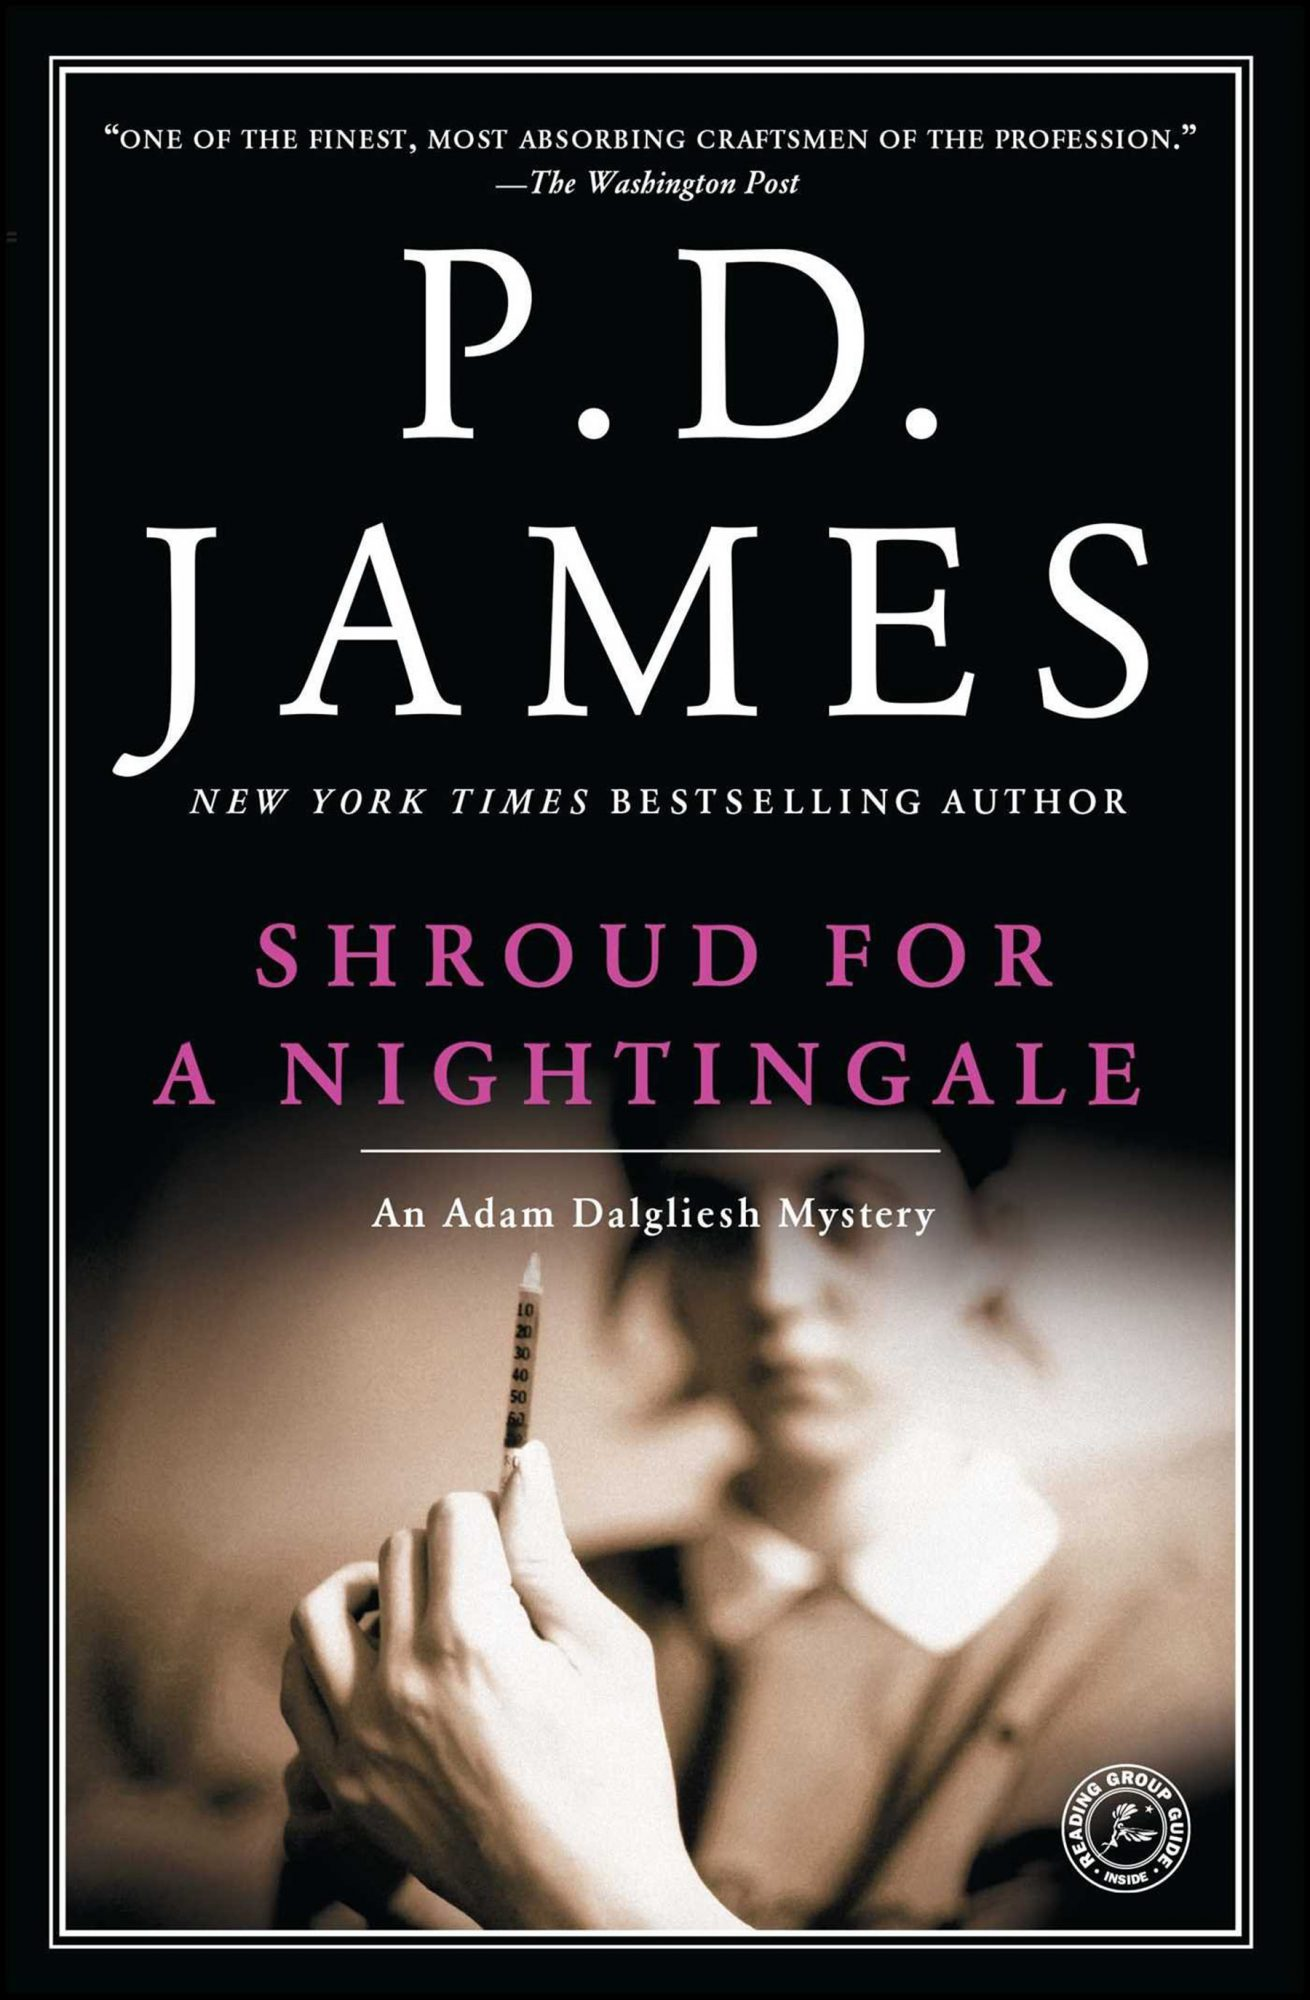 P.D. James, Shroud for a Nightingale